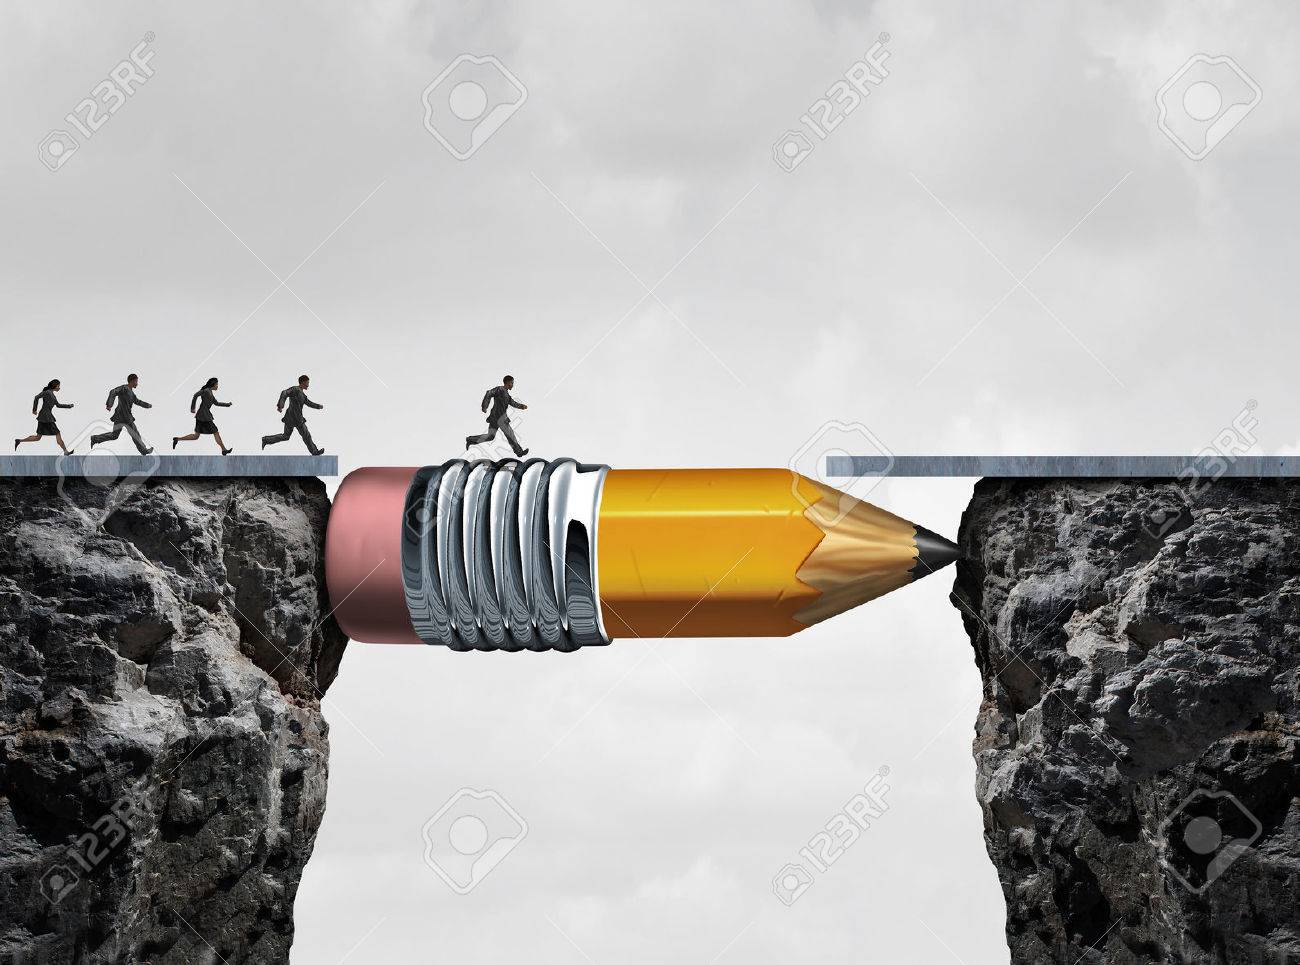 Business success symbol and conquering adversity as a group of people running from one cliff to another with the help of a pencil acting as a bridge in a concept for bridging the gap to achieve a goal. - 51142468